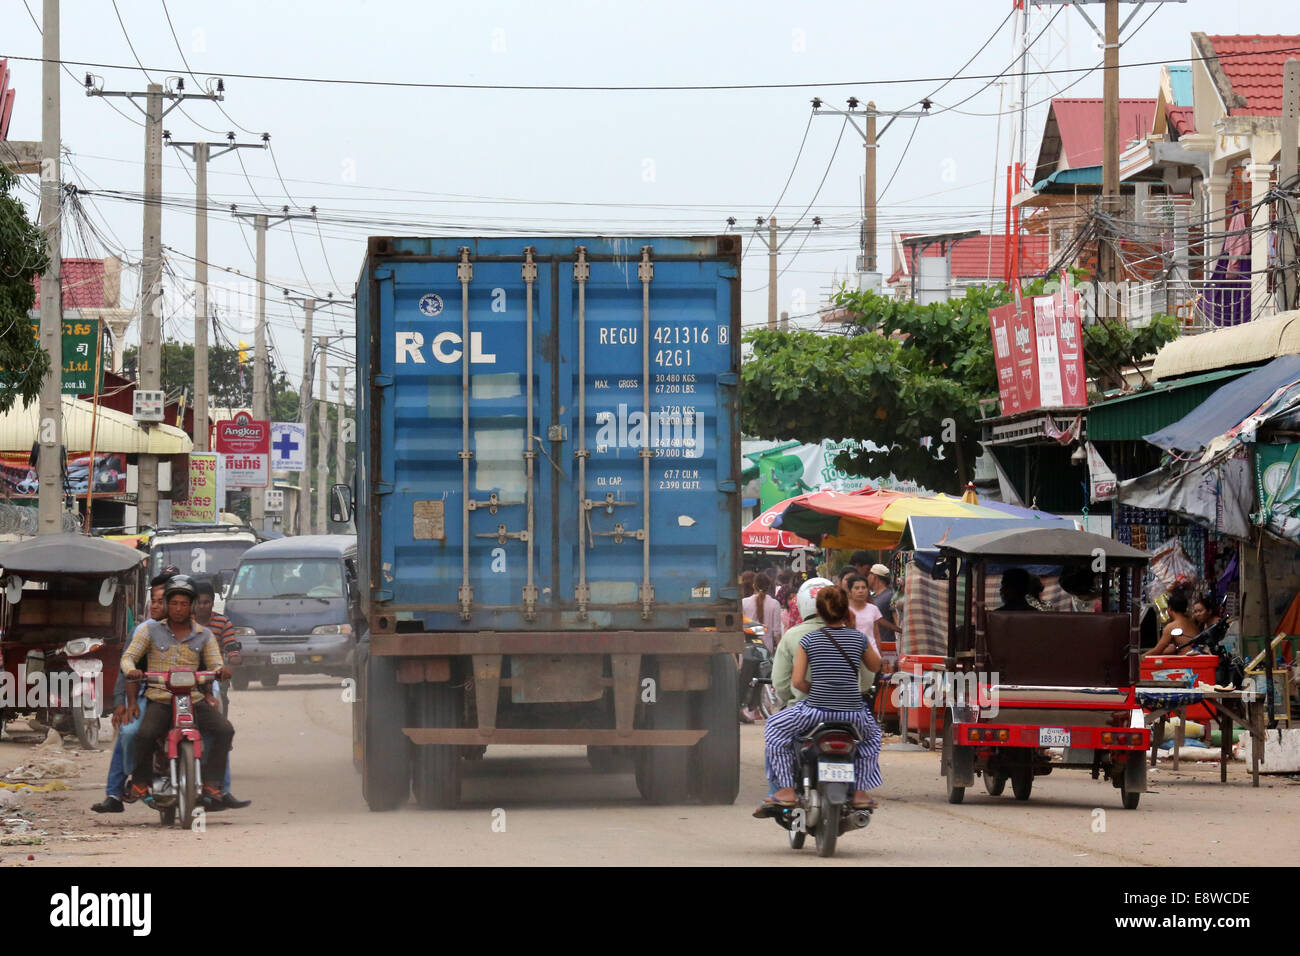 Truck with container of garments from the textile factories in Phnom Penh, Cambodia - Stock Image